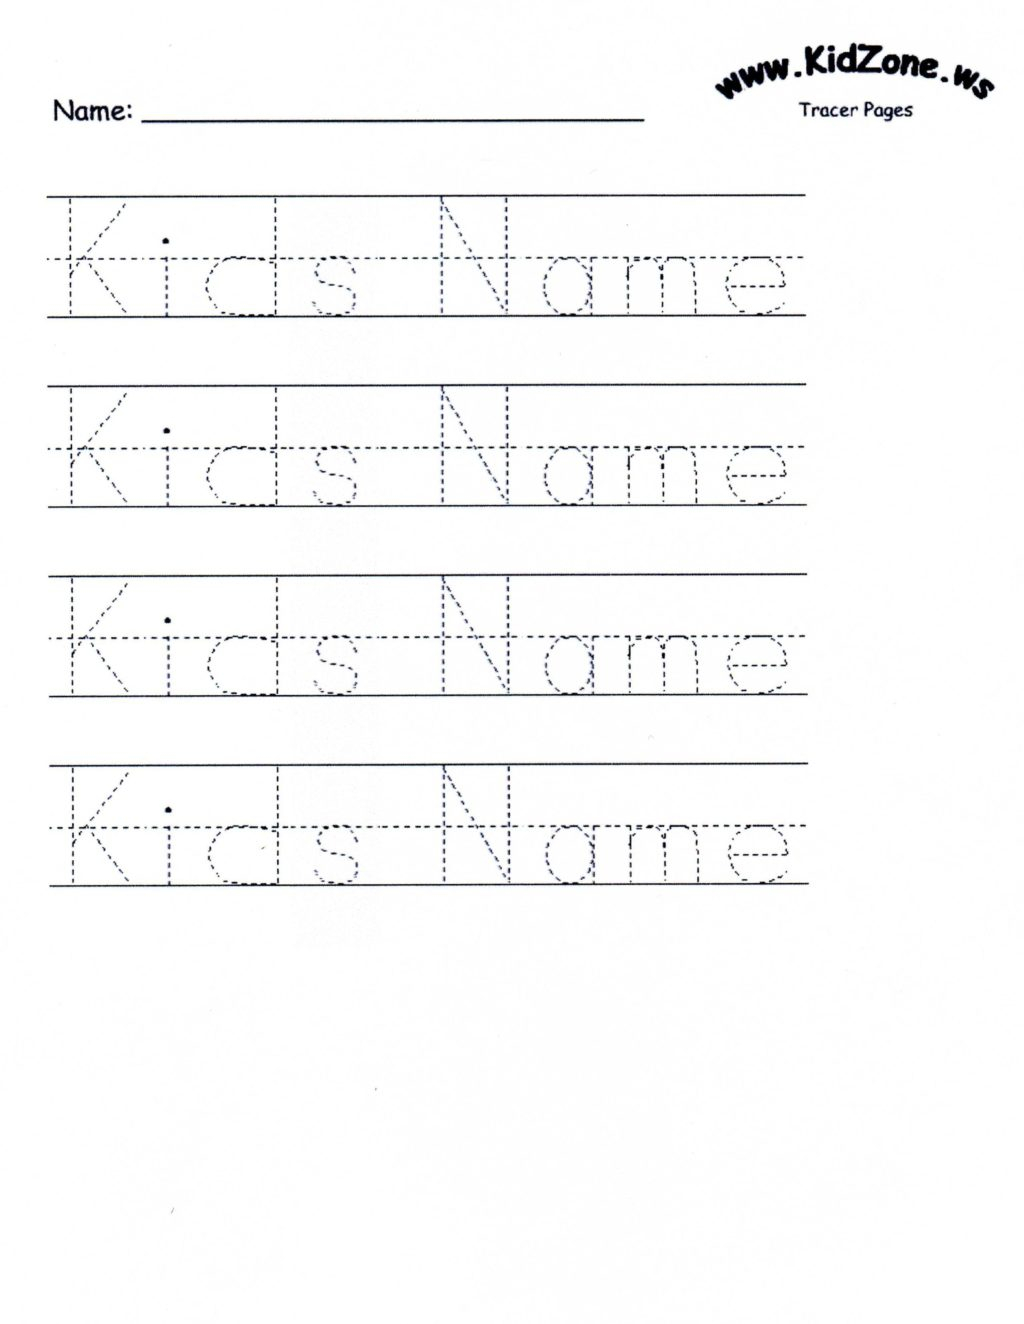 Math Worksheet ~ Customizable Printable Letter Pages Name